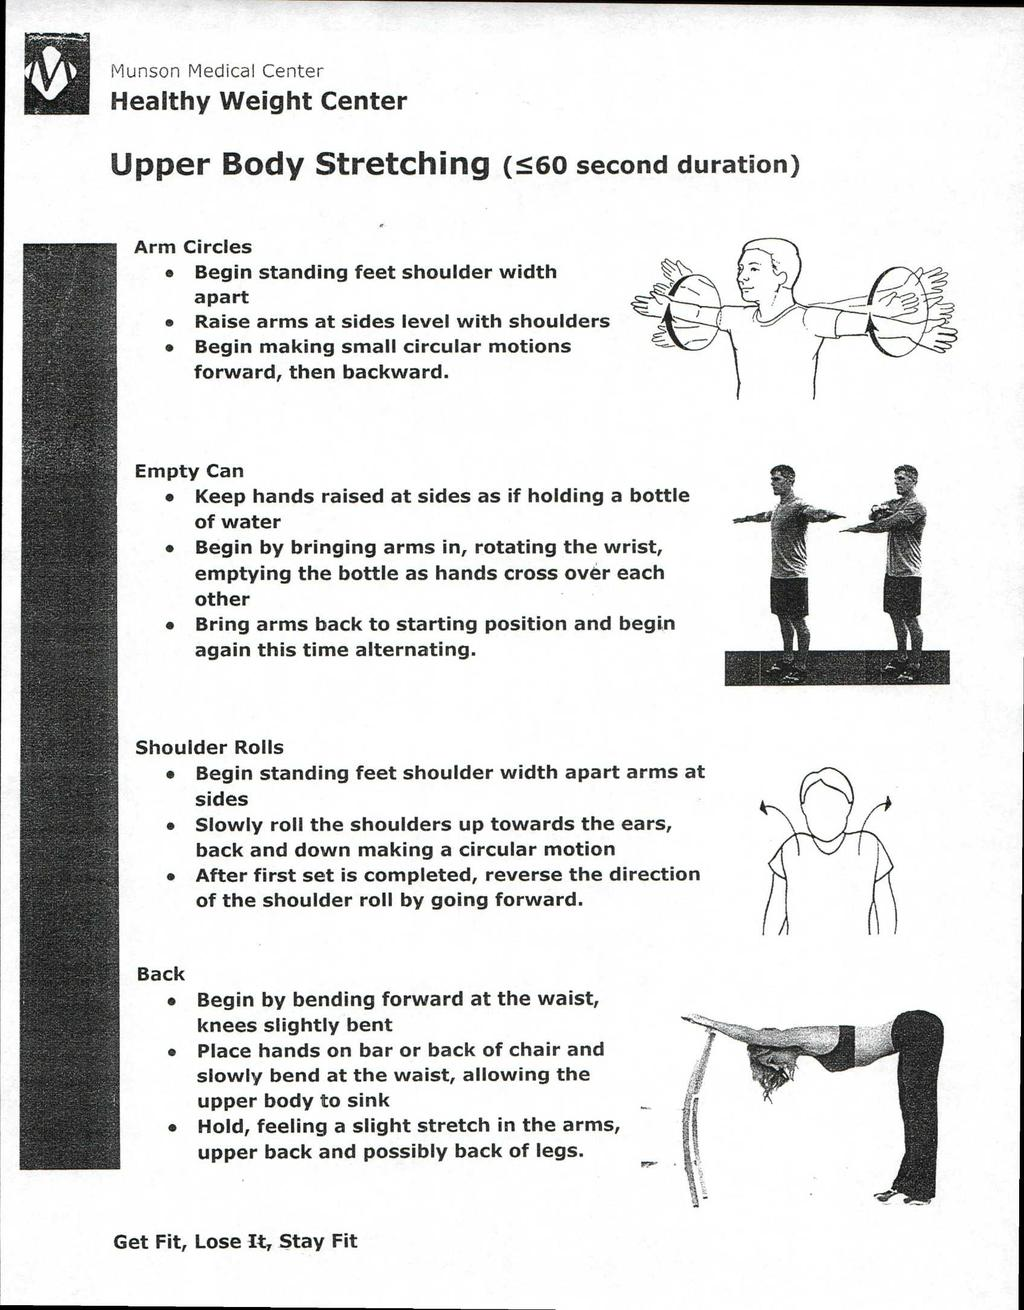 Upper Body Stretching (560 second duration) Arm Circles Begin standing feet shoulder width apart Raise arms at sides level with shoulders Begin making small circular motions forward, then backward.